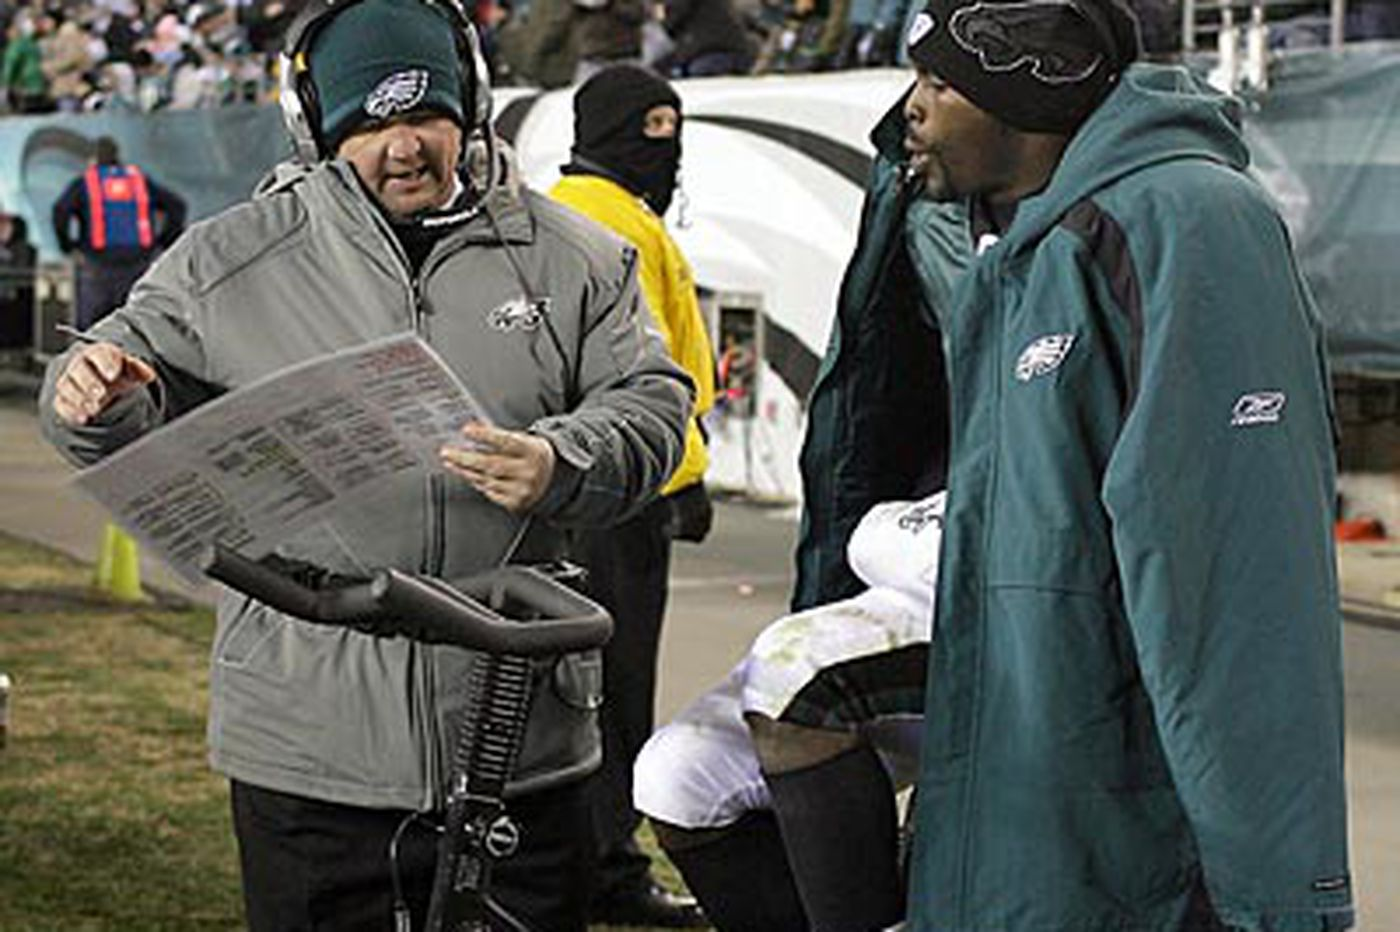 Paul Domowitch: Eagles' Mornhinweg could be a head-coach candidate